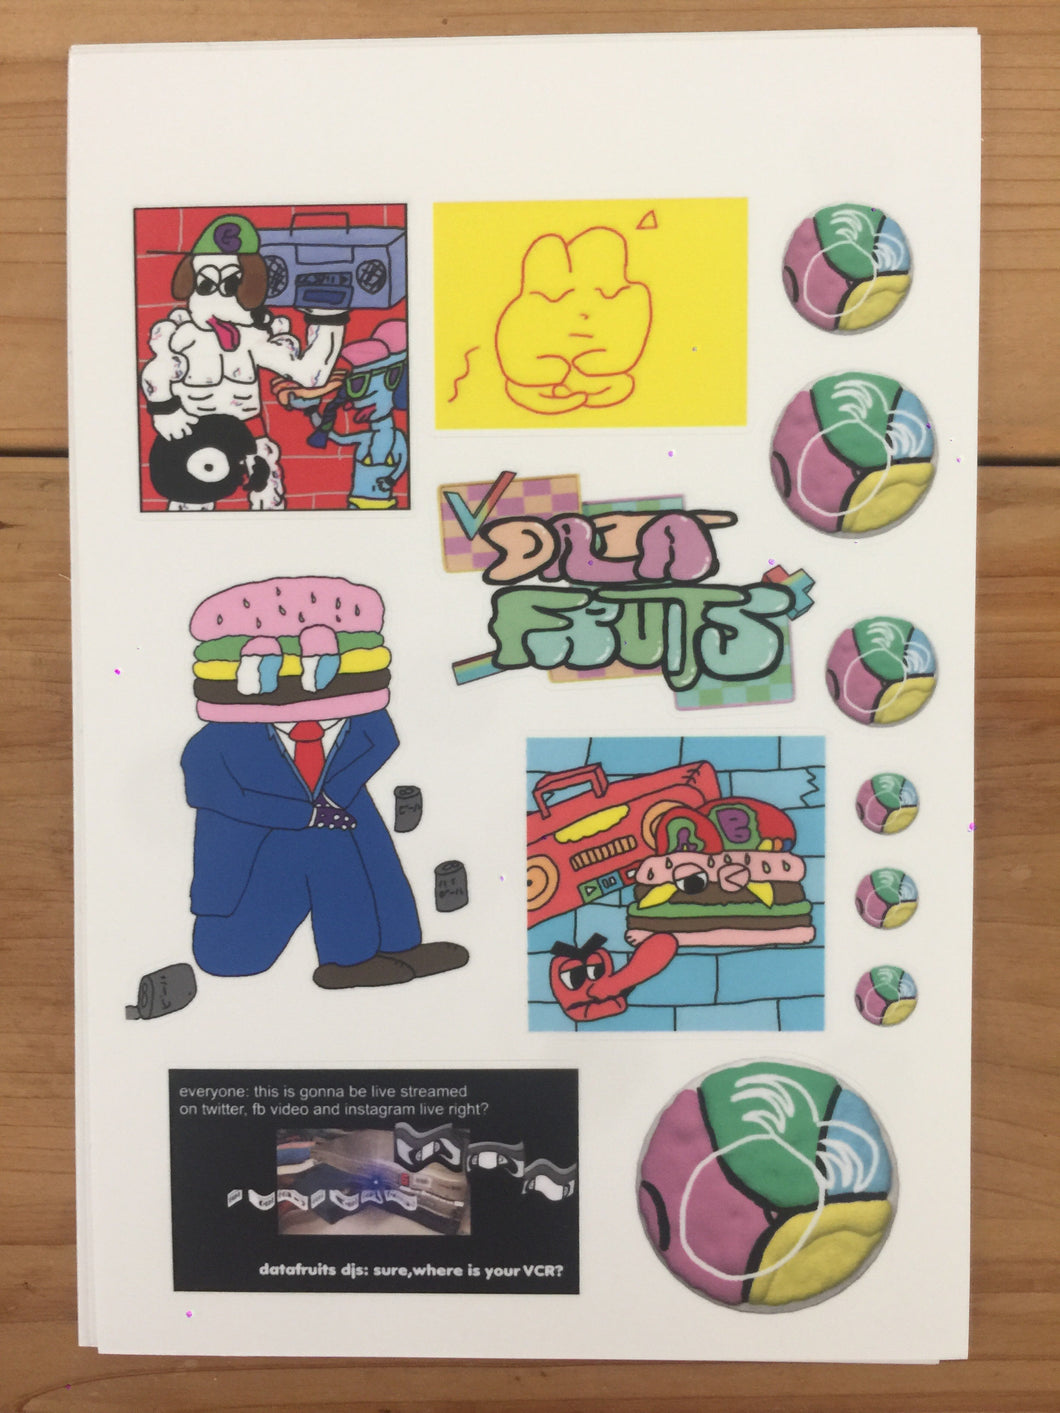 datafruitsmemes sticker sheet